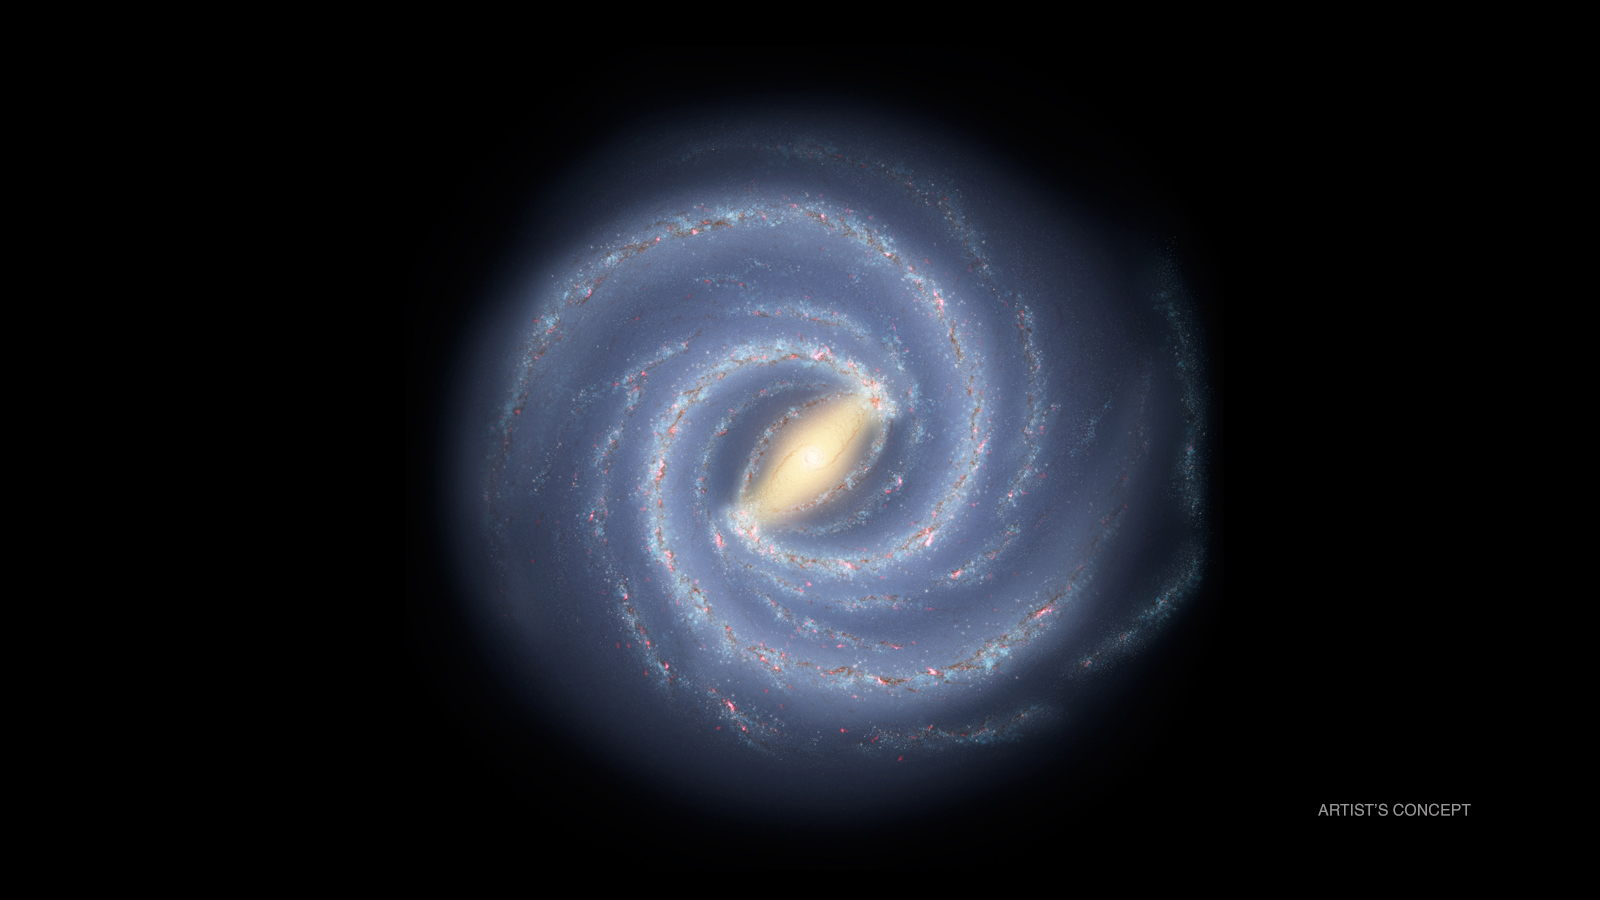 Artist's conception of the Milky Way galaxy